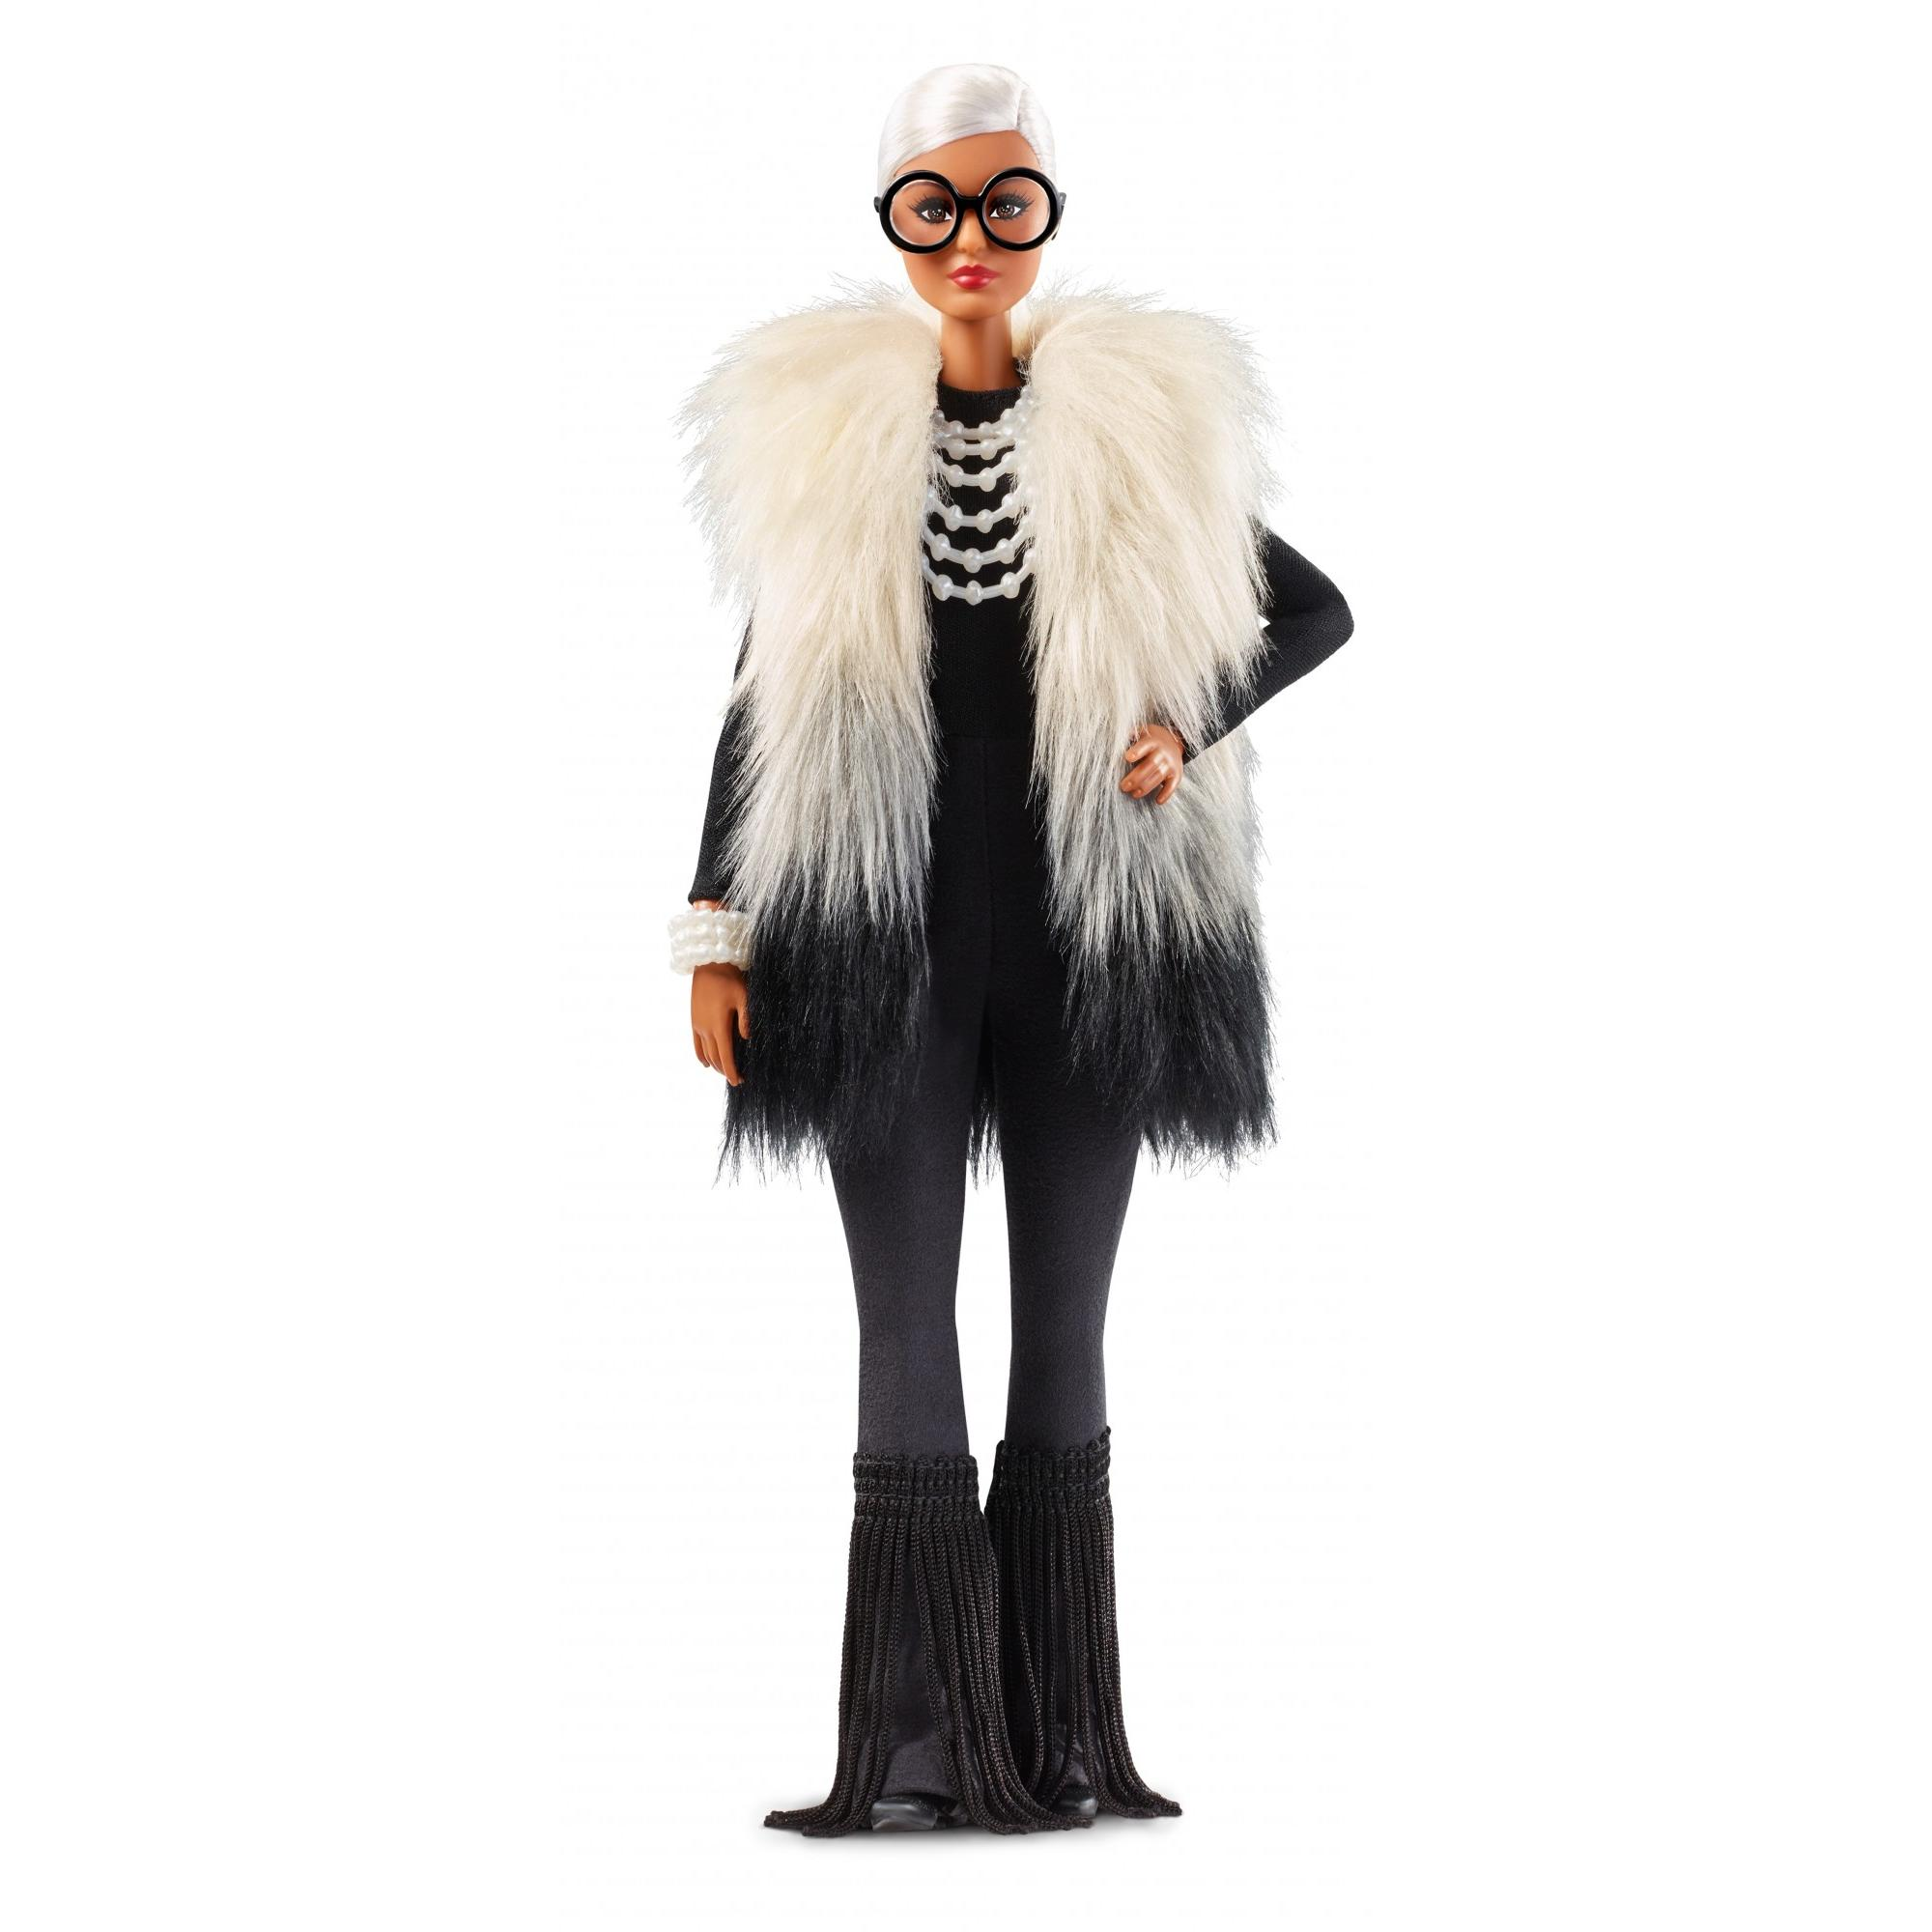 Barbie Collector Styled by Iris Apfel Doll with Multi-Hued Vest and Accessories by Mattel